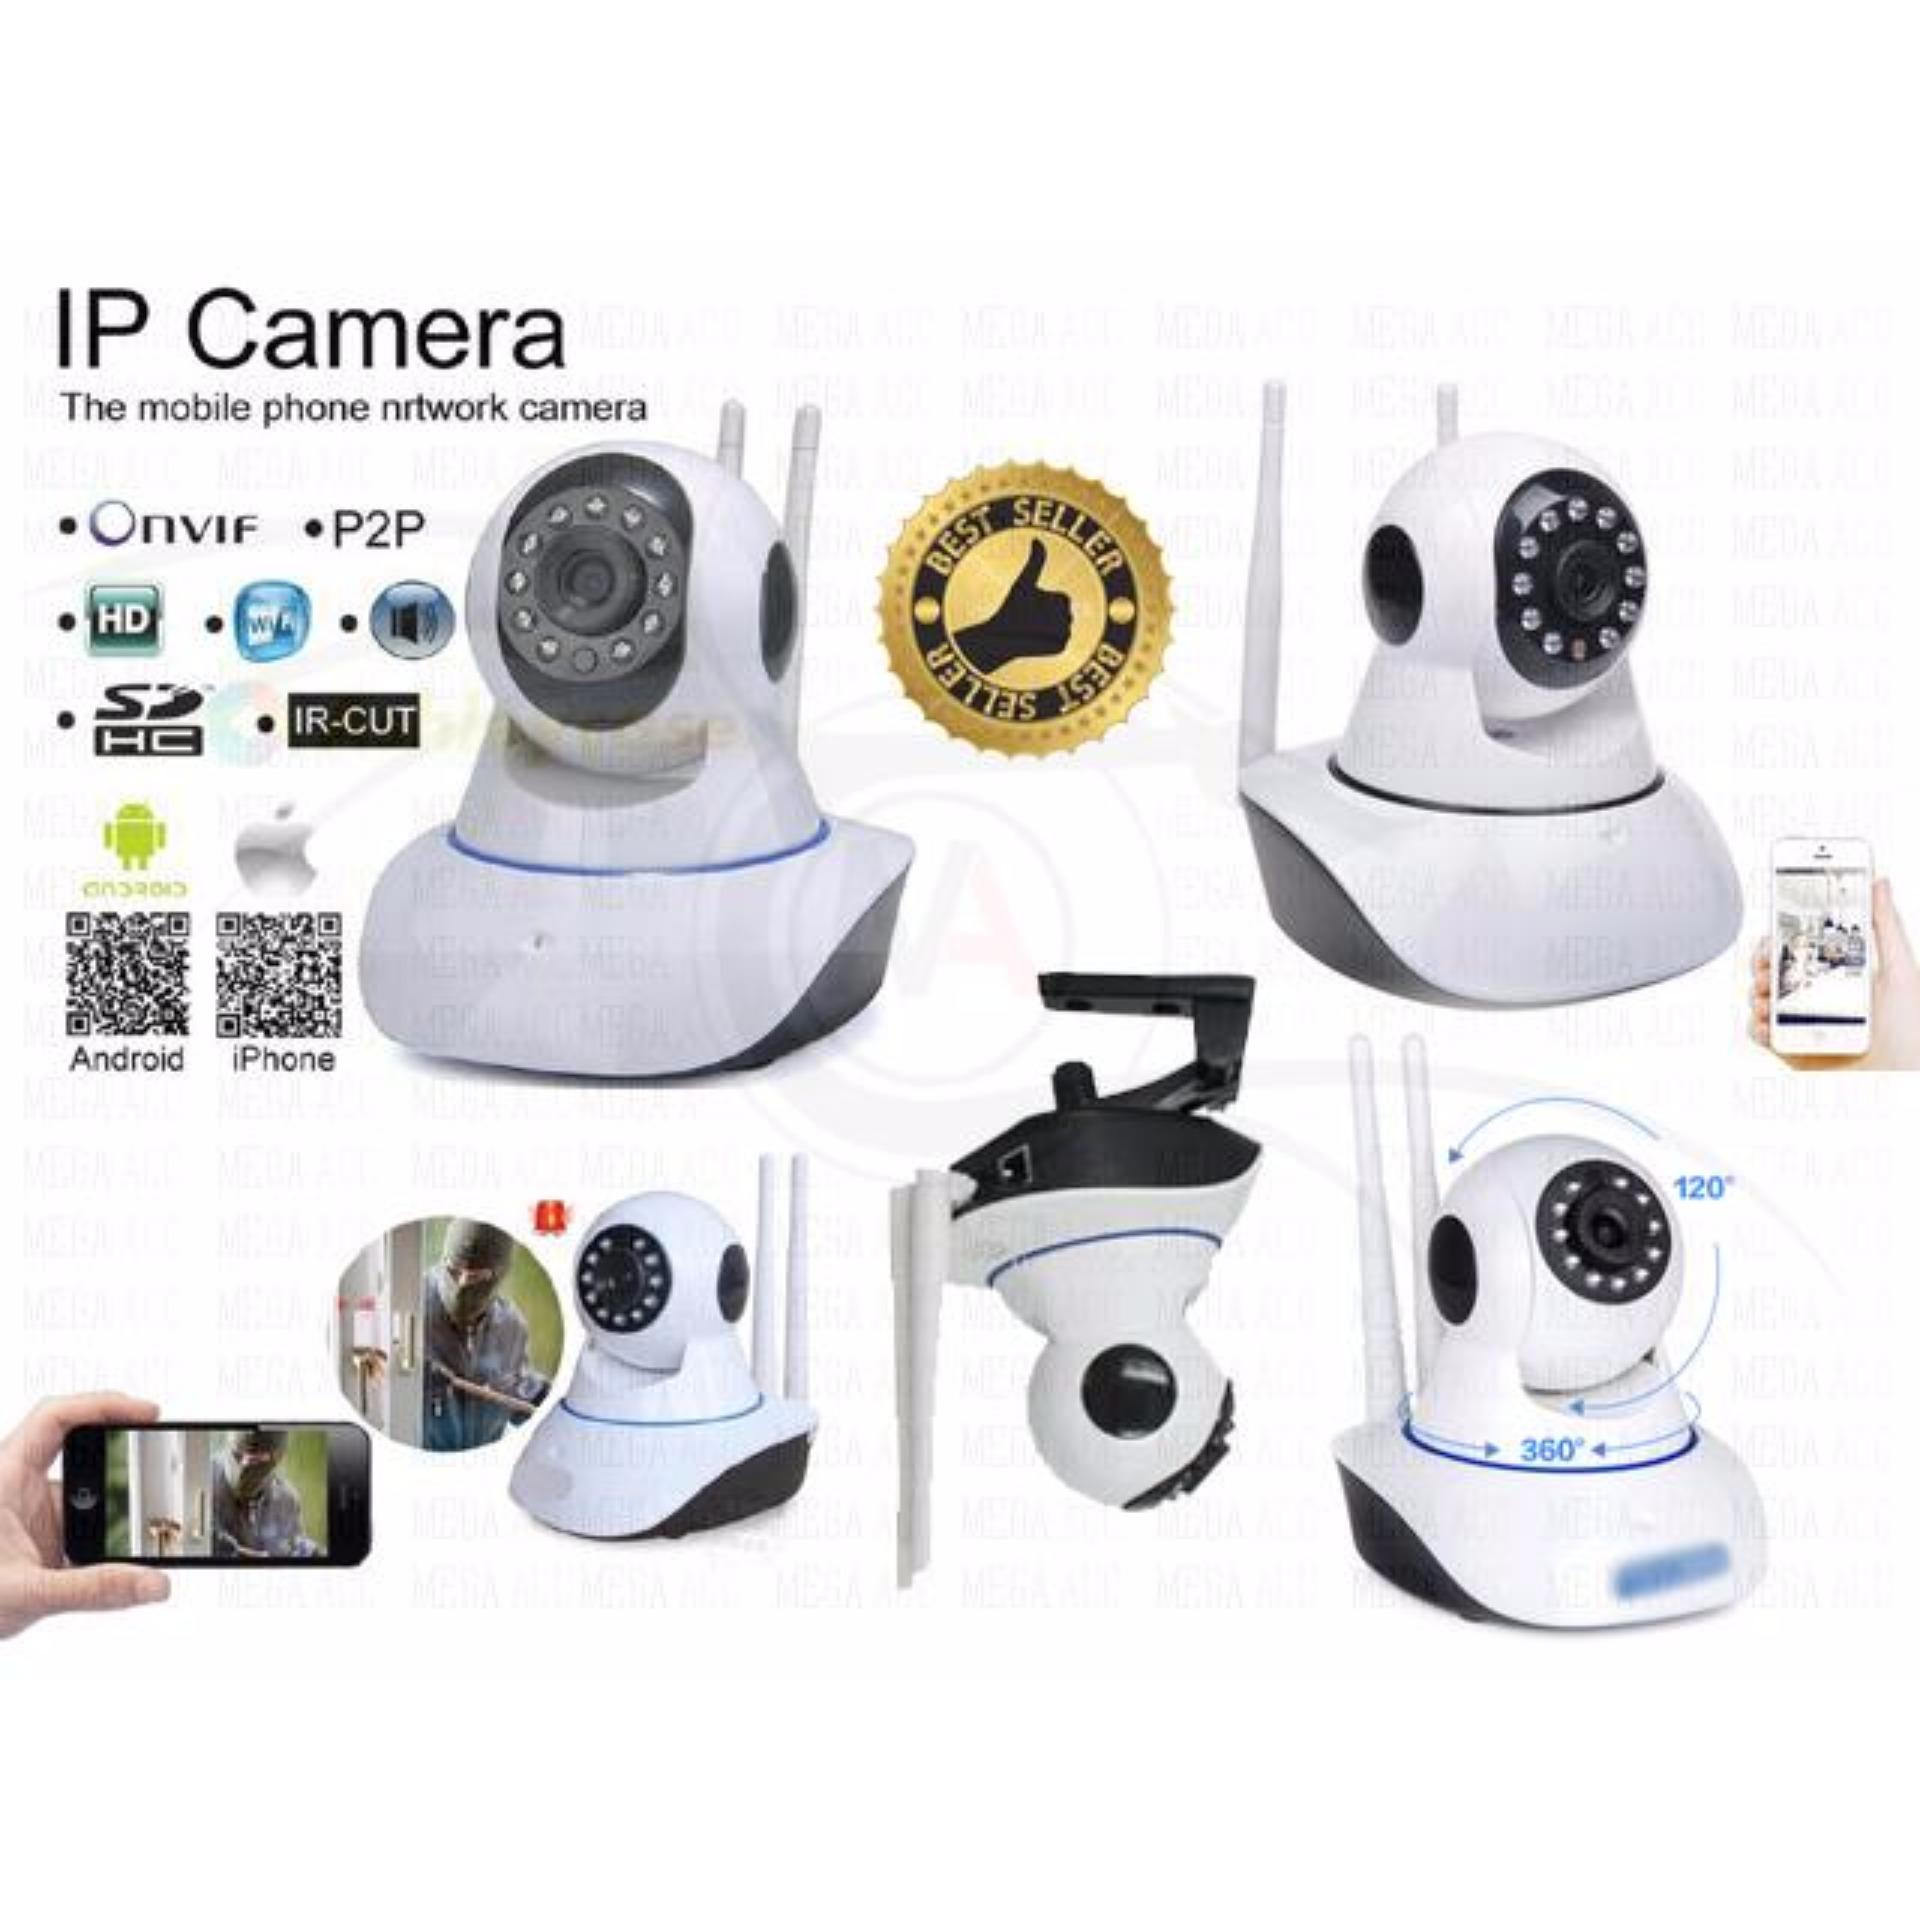 Spesifikasi Hd Wireless Ip Camera Night Vision X8100 Mh36 Yang Bagus